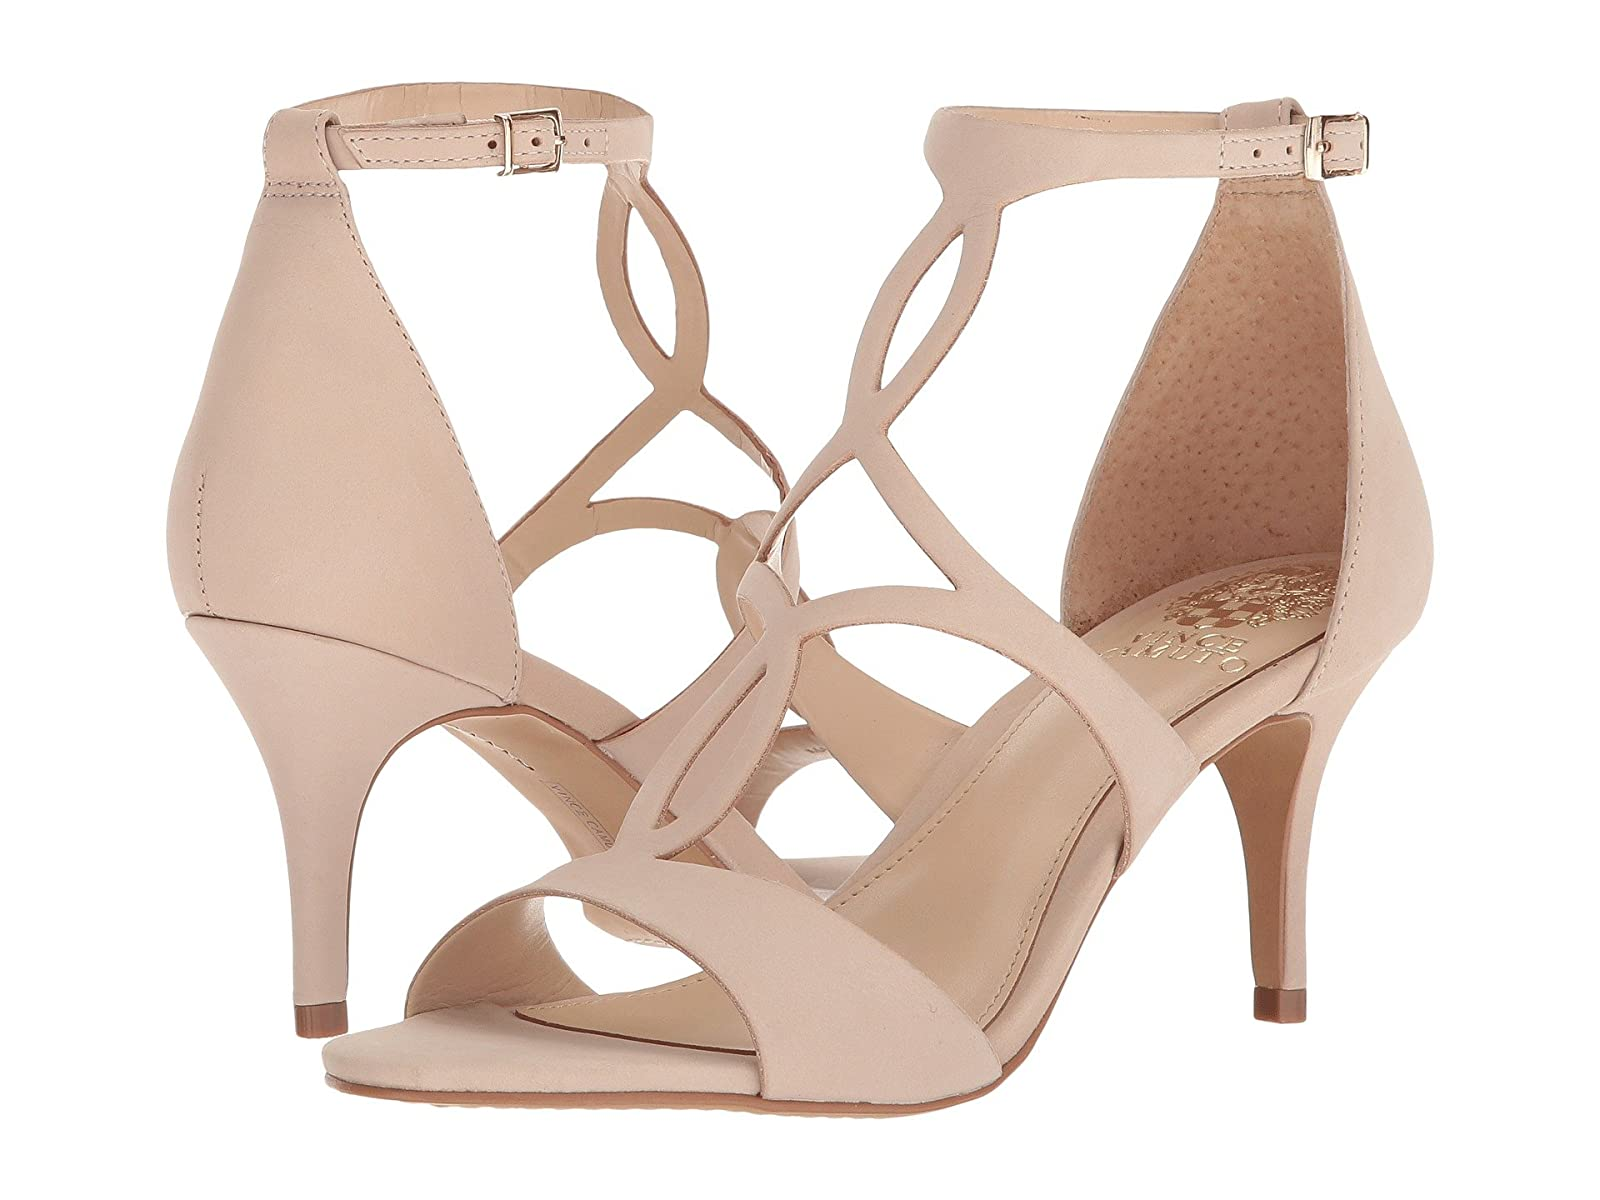 Vince Camuto PaytoAtmospheric grades have affordable shoes